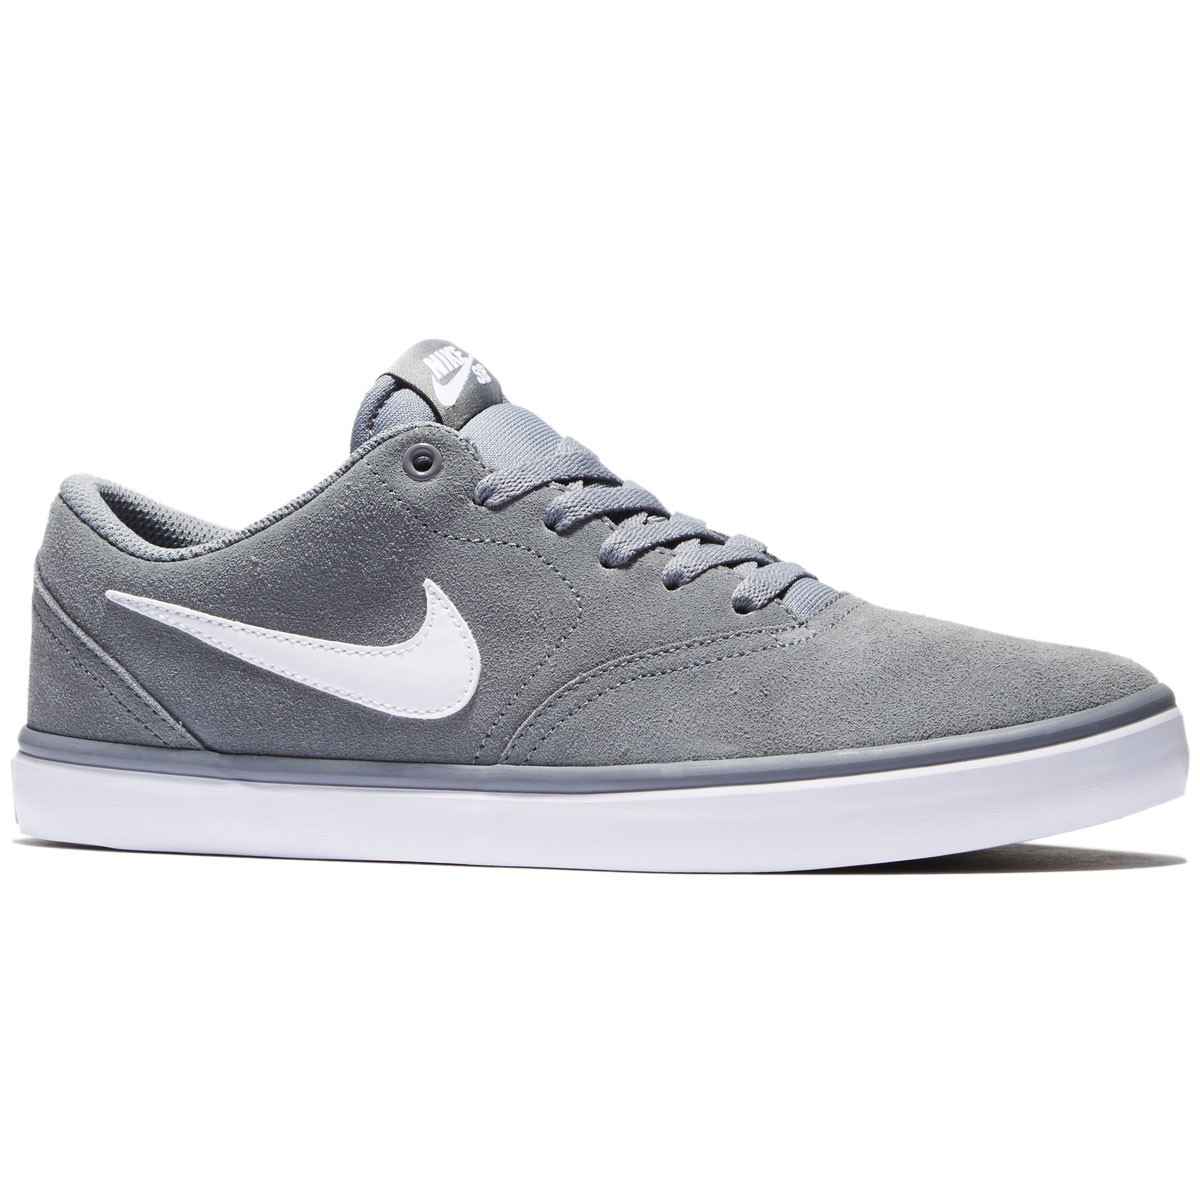 a53262a8d5b7 Nike SB Check Solarsoft Shoes